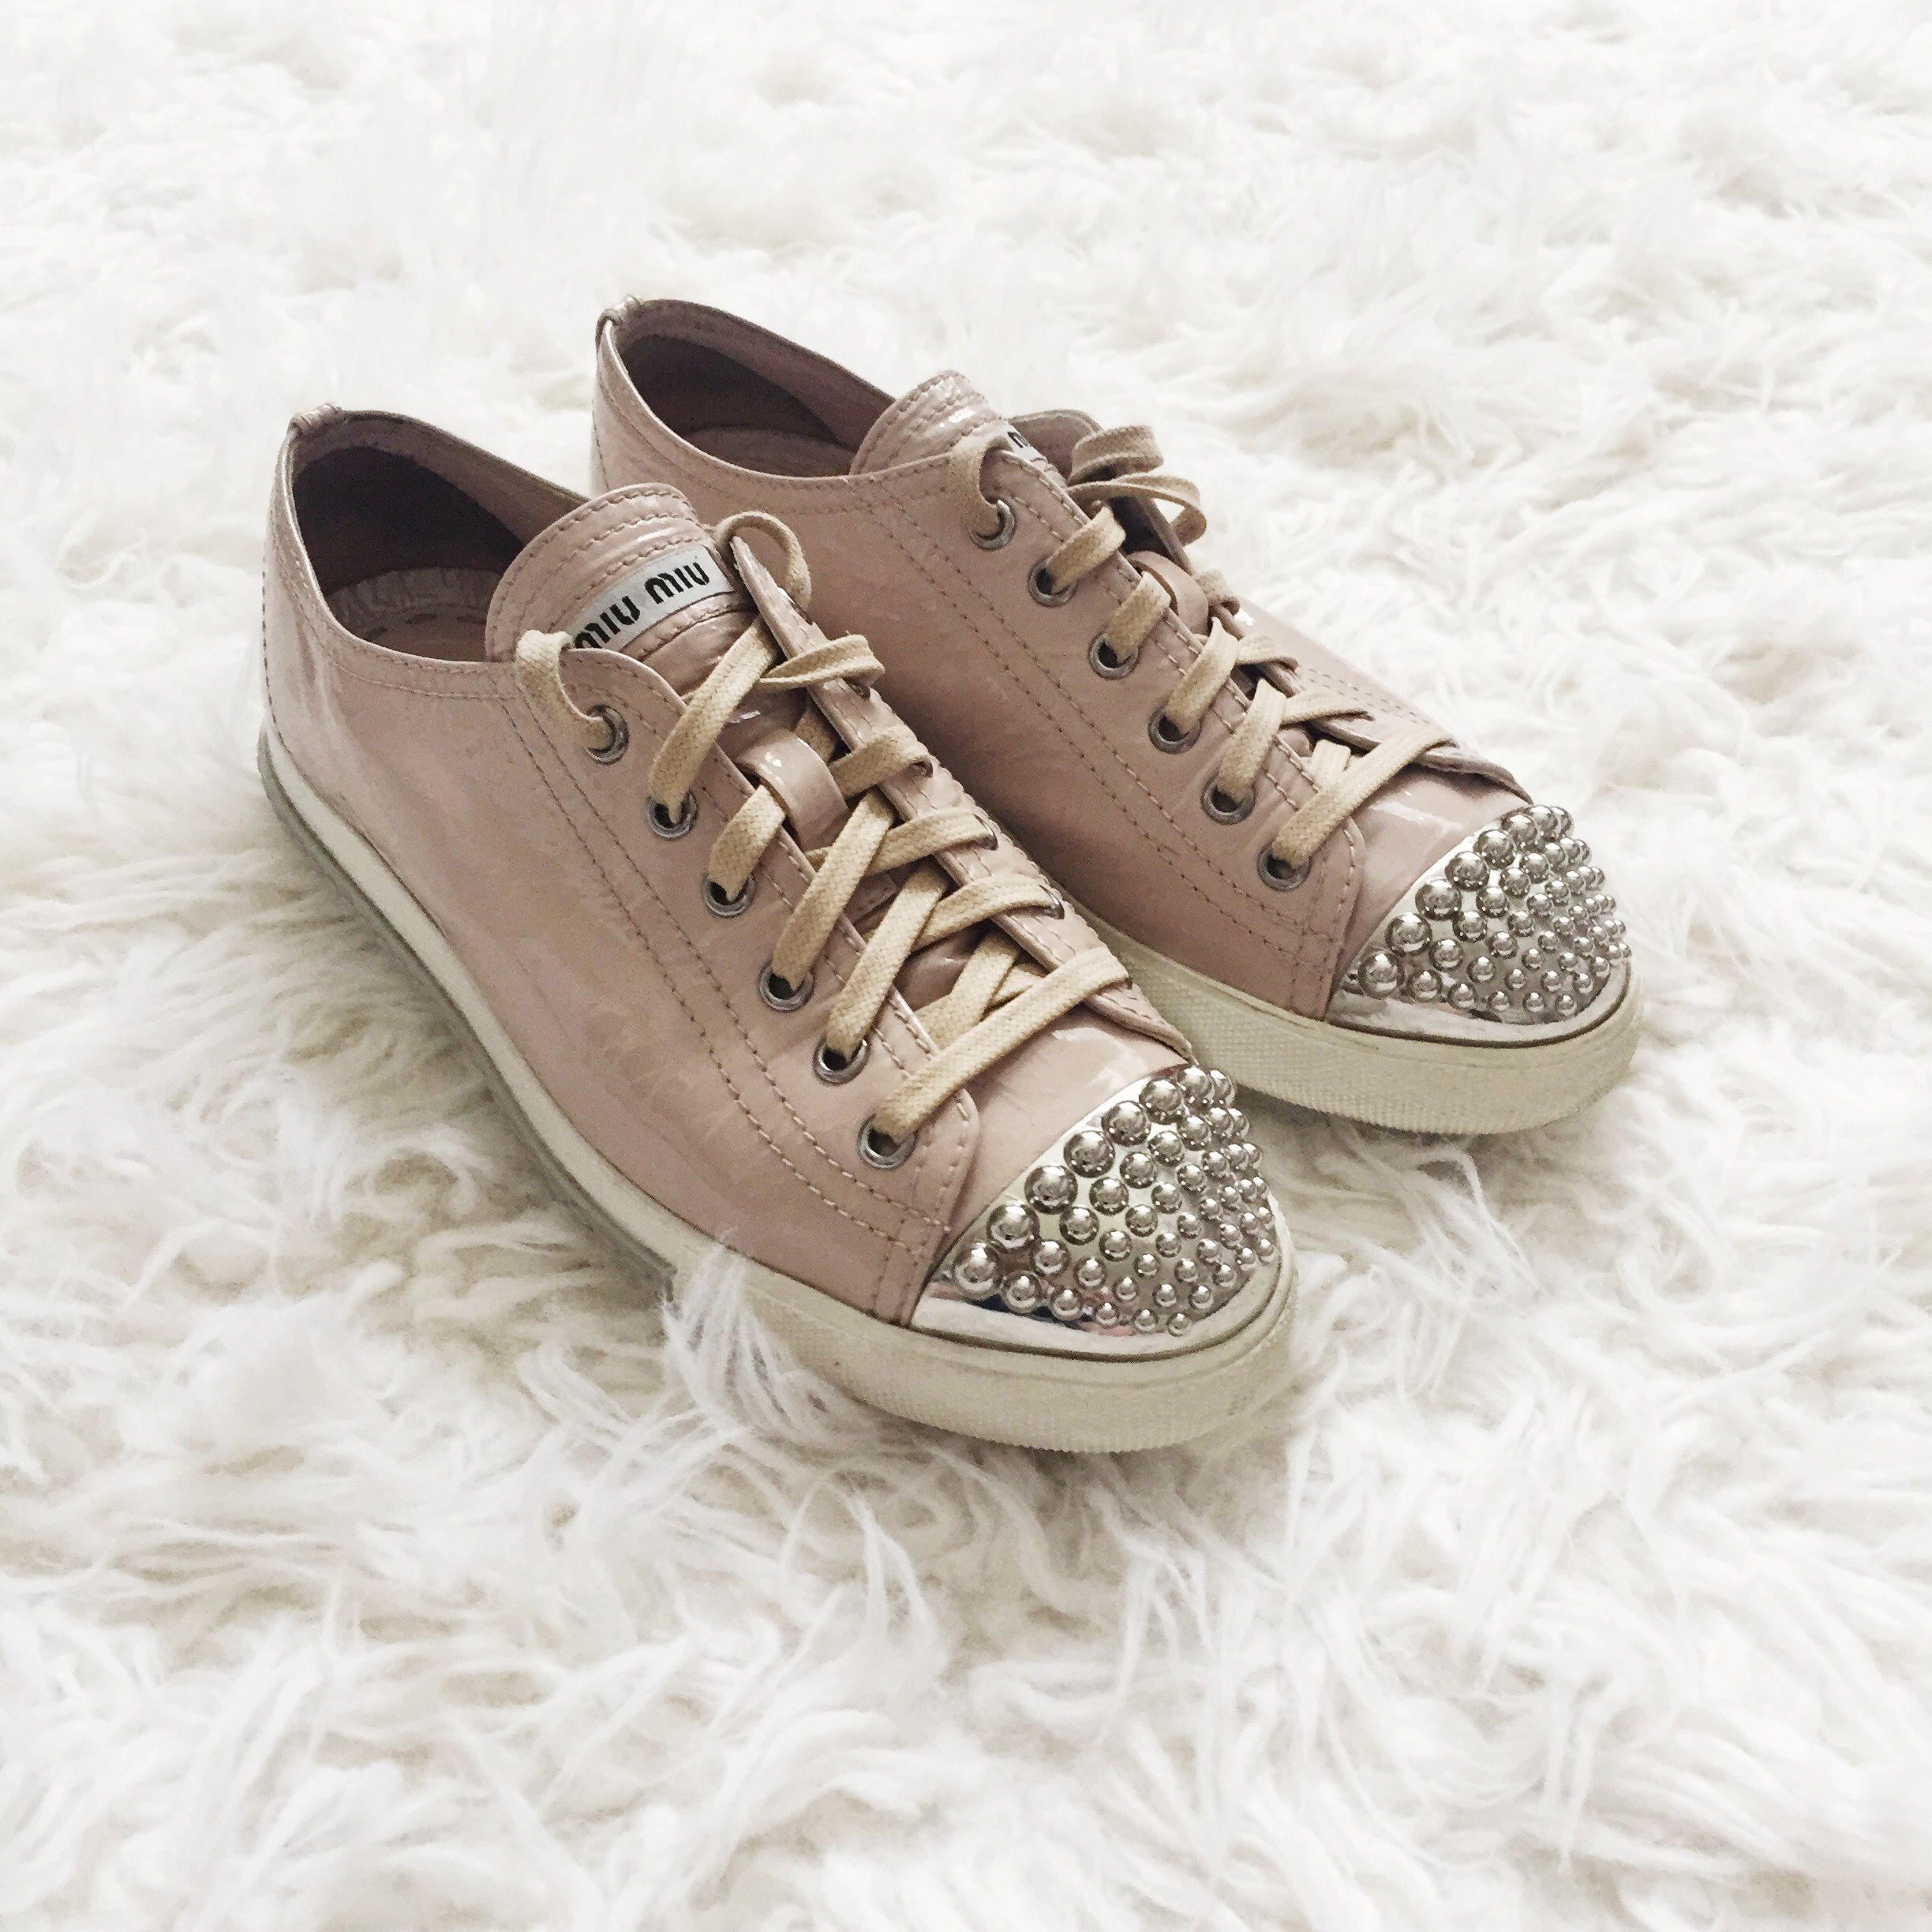 734e9de719 Miu Miu runners available on Suite Adore #miumiu #runners #sneakers #shoes  #pink #fashion #women #luxury #consignment #shop #suiteadore